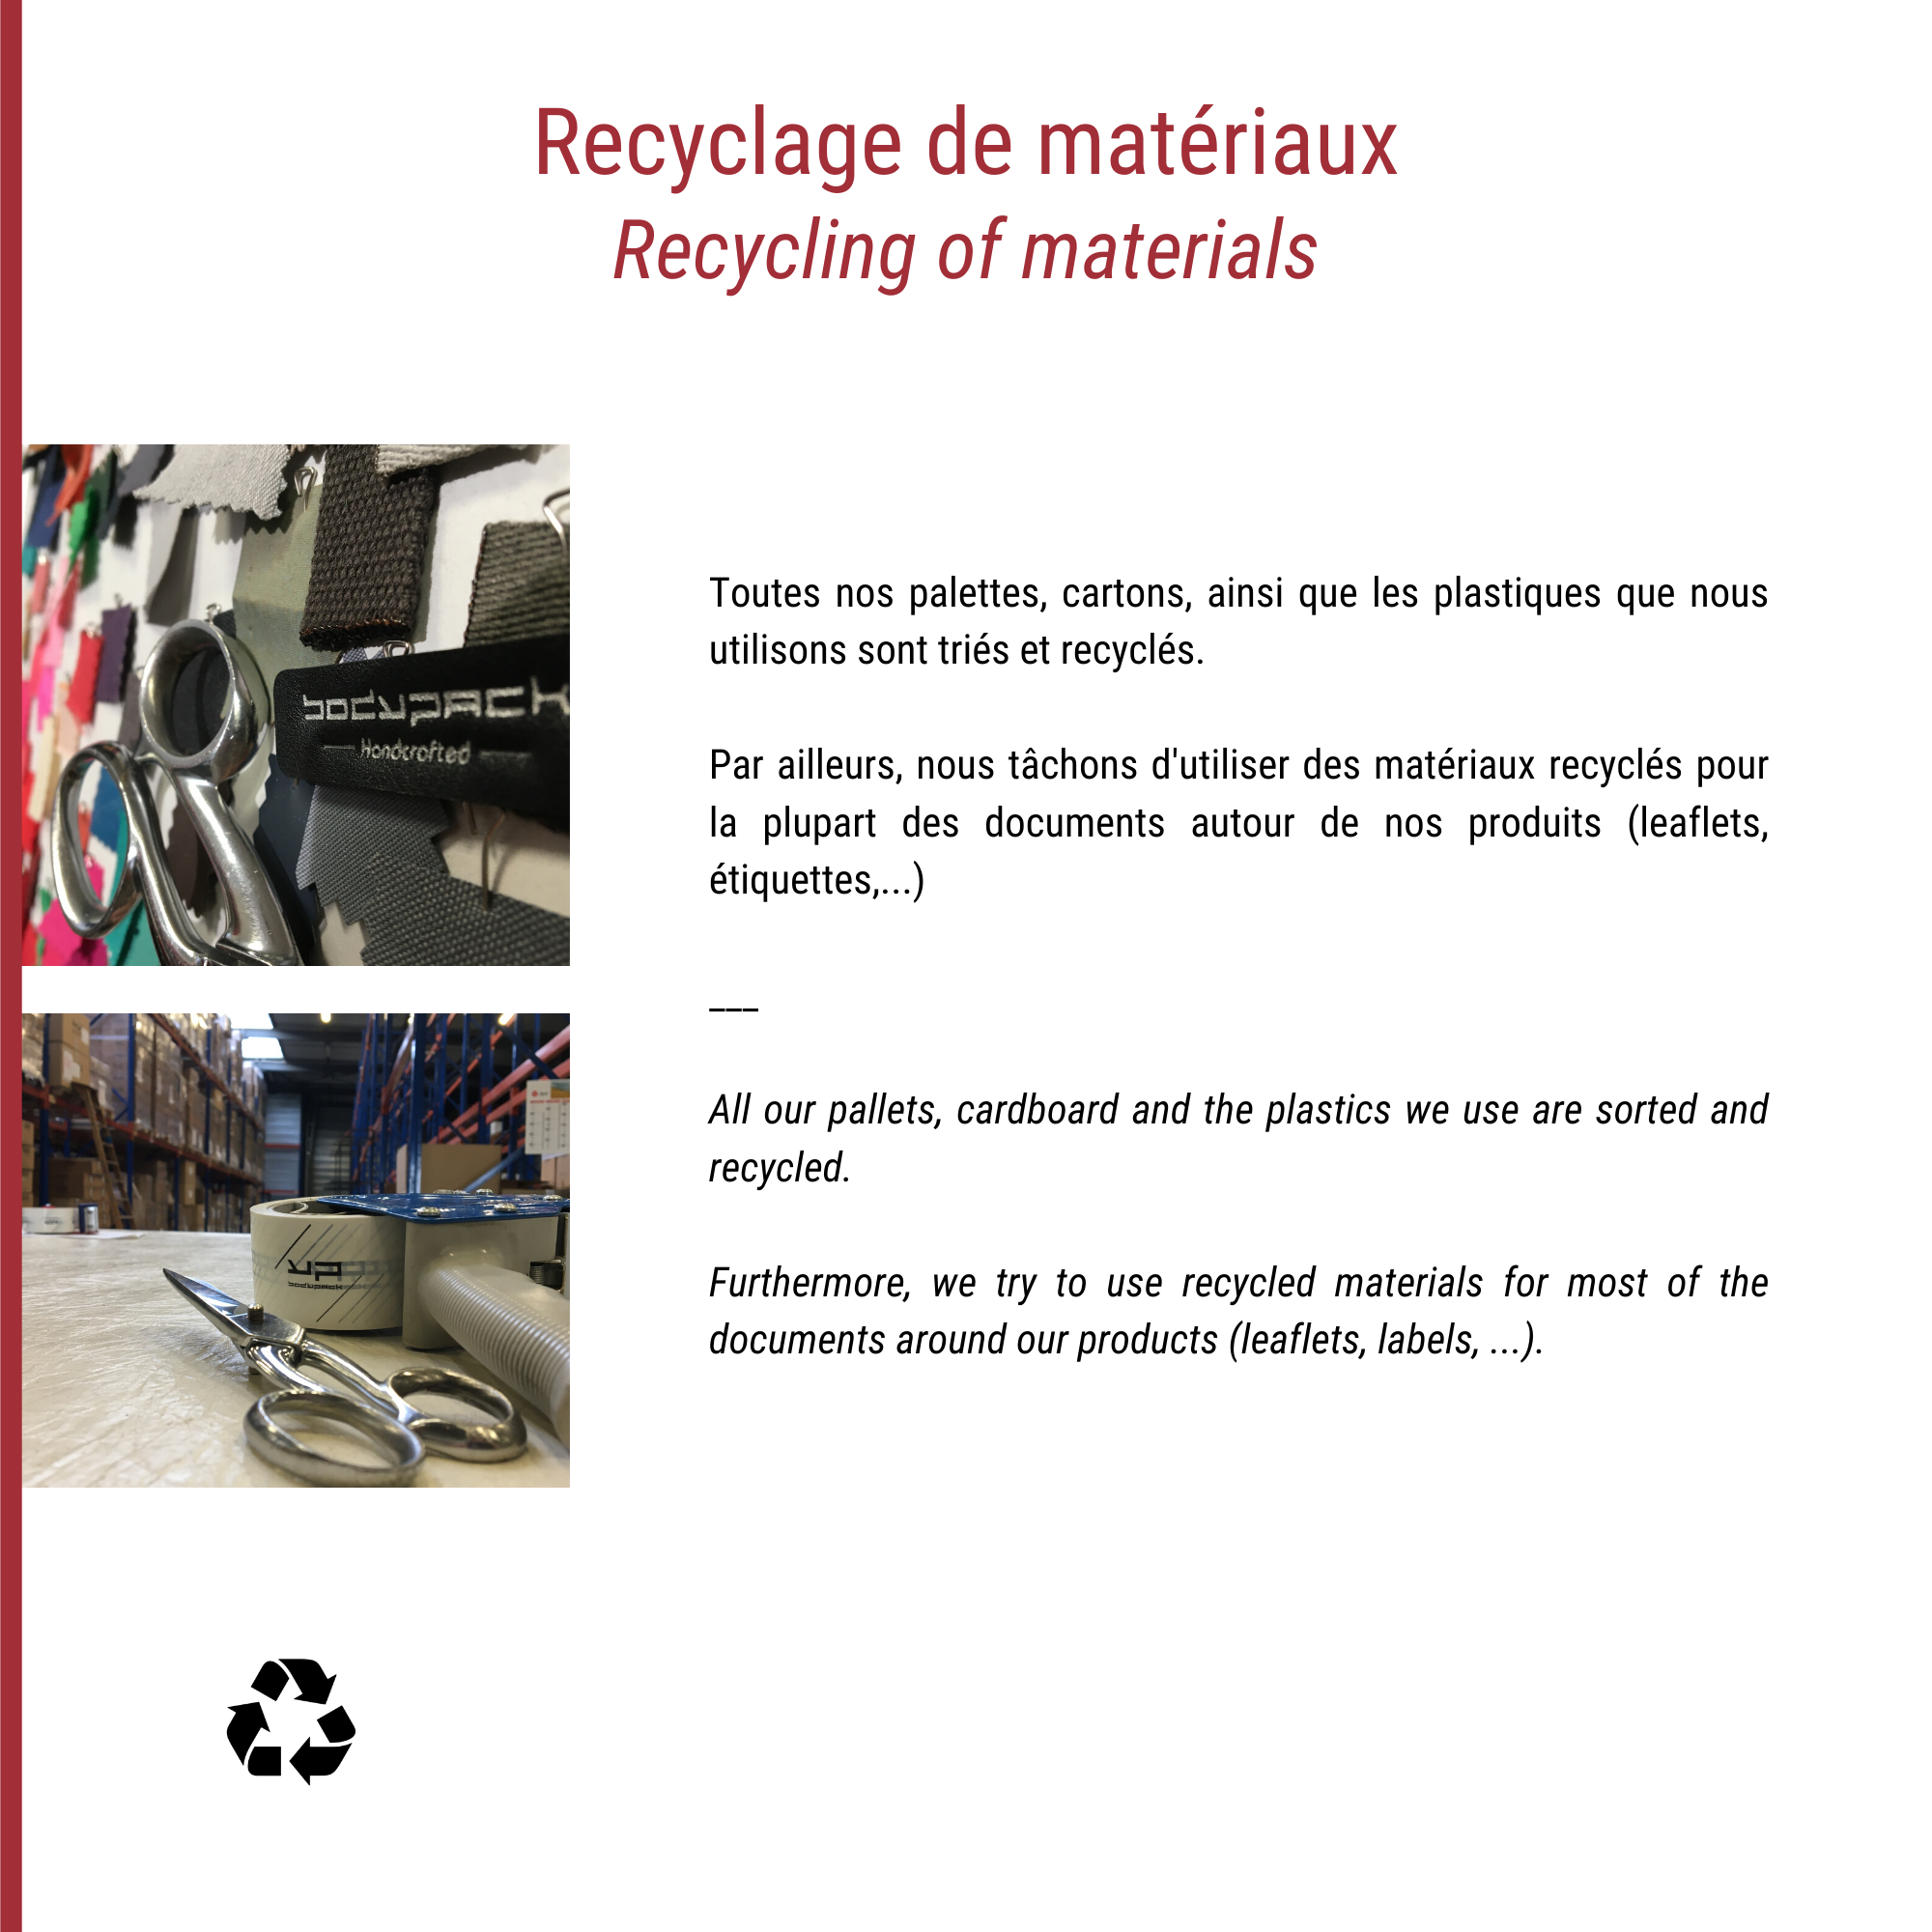 Recycling of materials essential for the environment